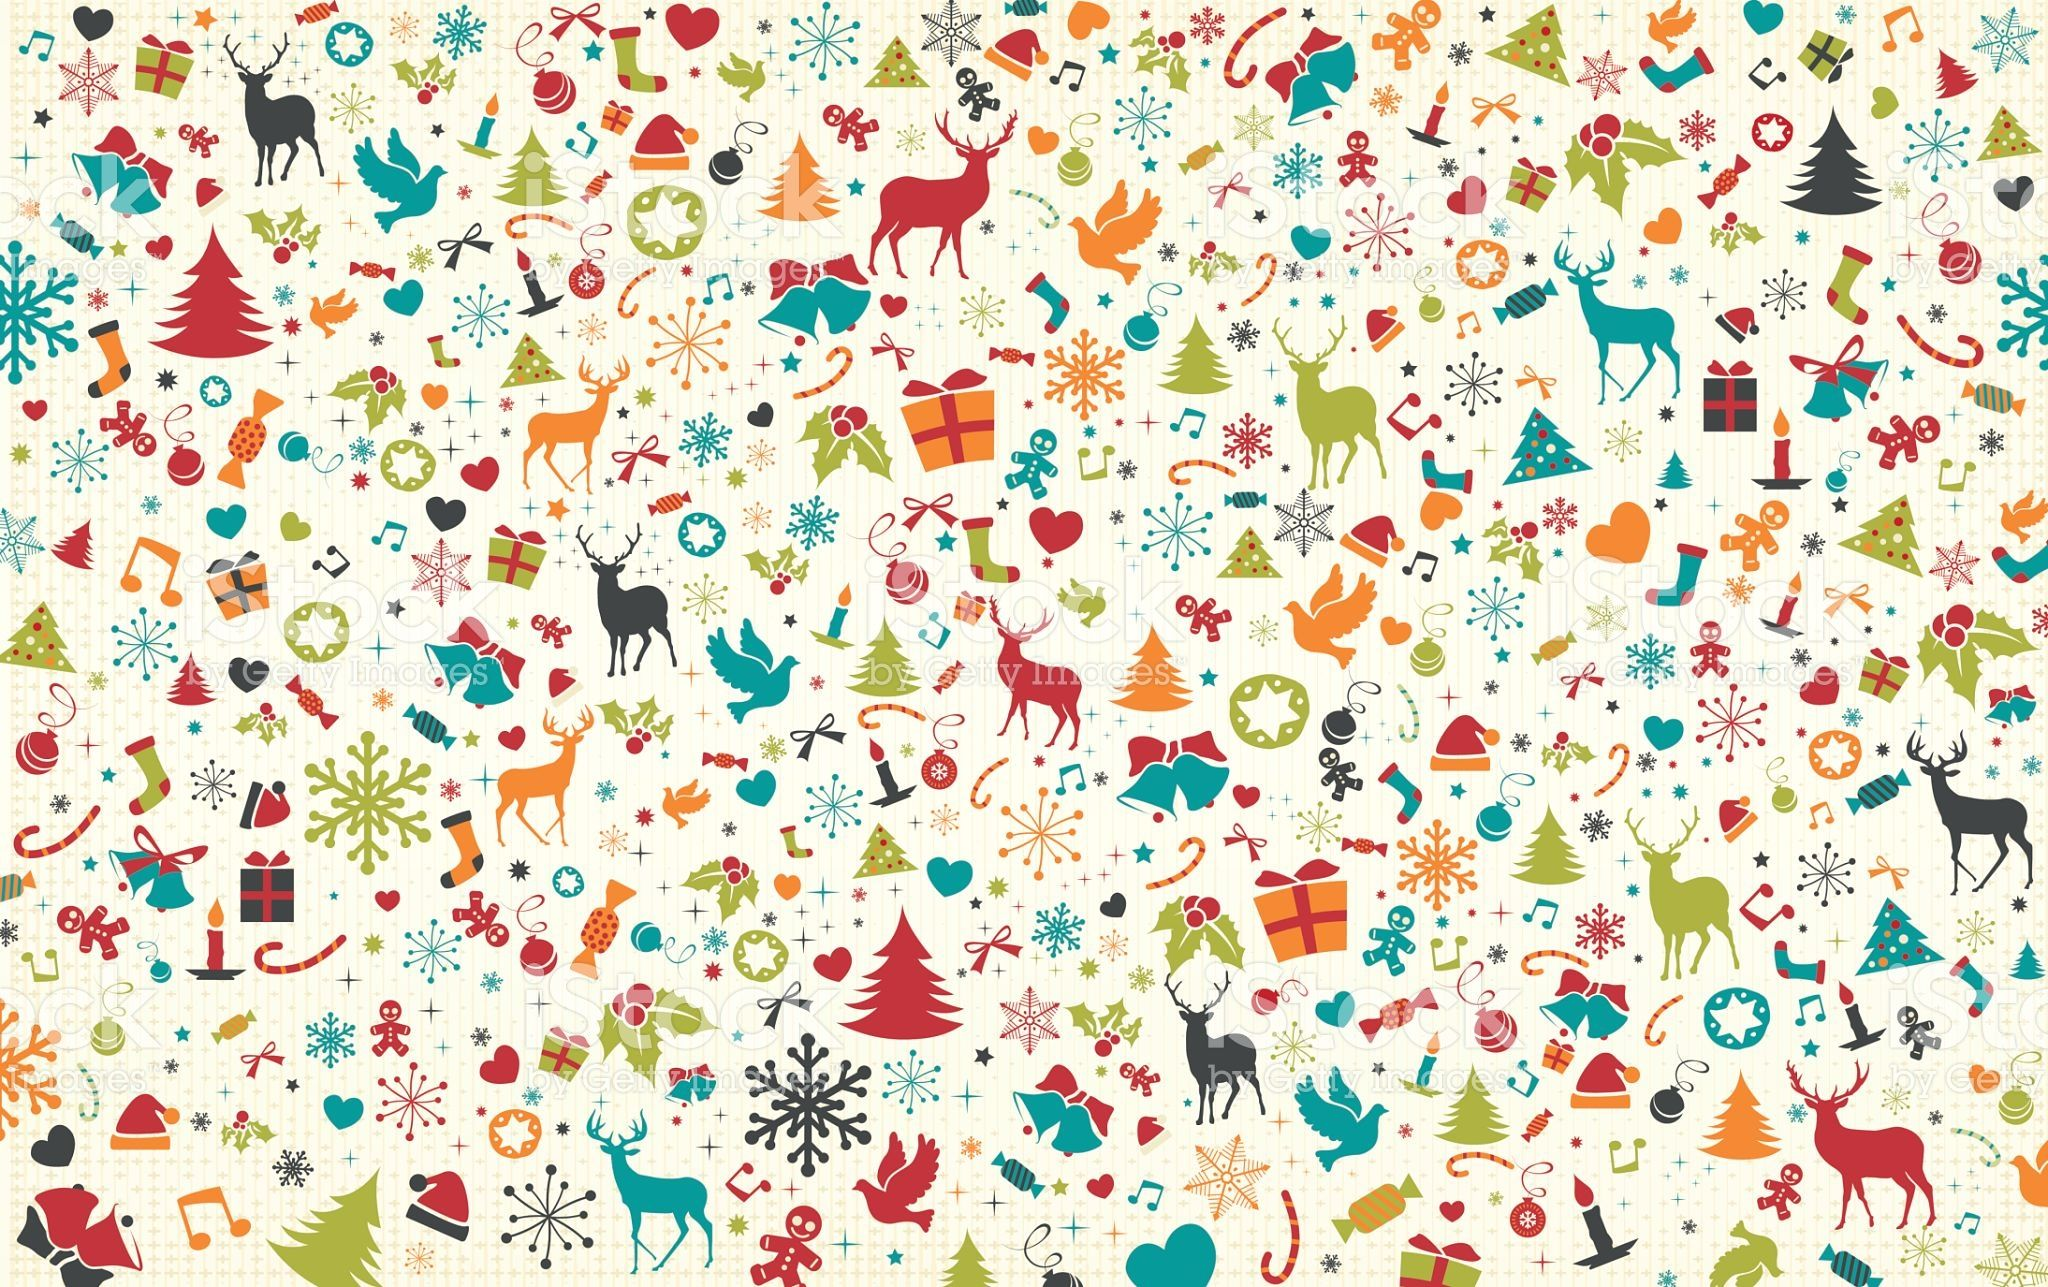 Vector pattern background contains christmas symbols and